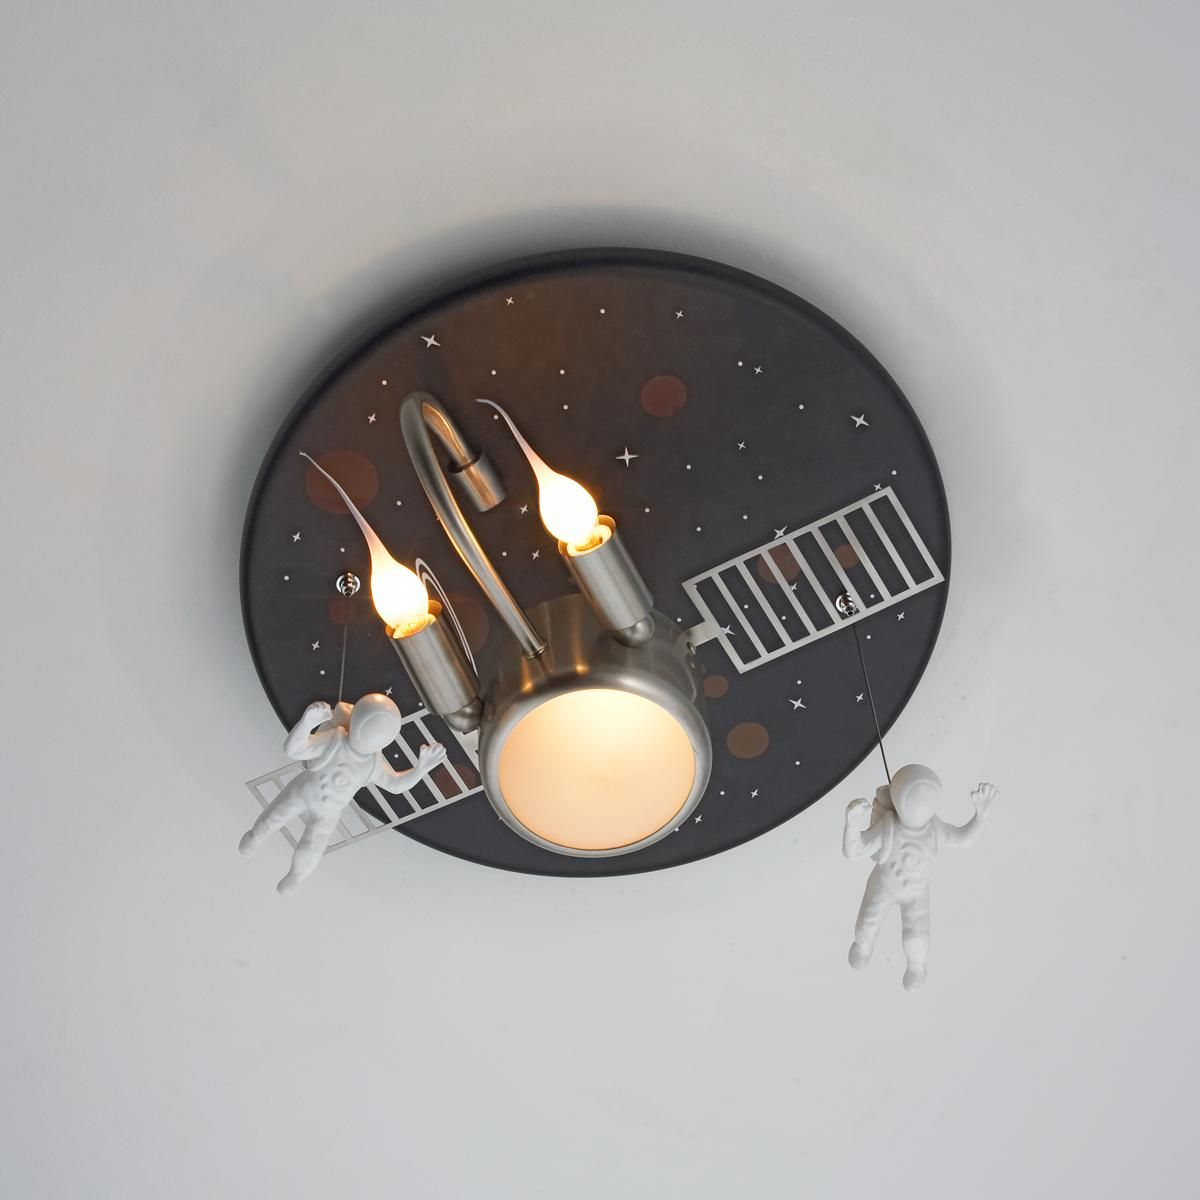 Astronaut ceiling light childrens lighting rugs pinterest astronaut ceiling light arubaitofo Gallery